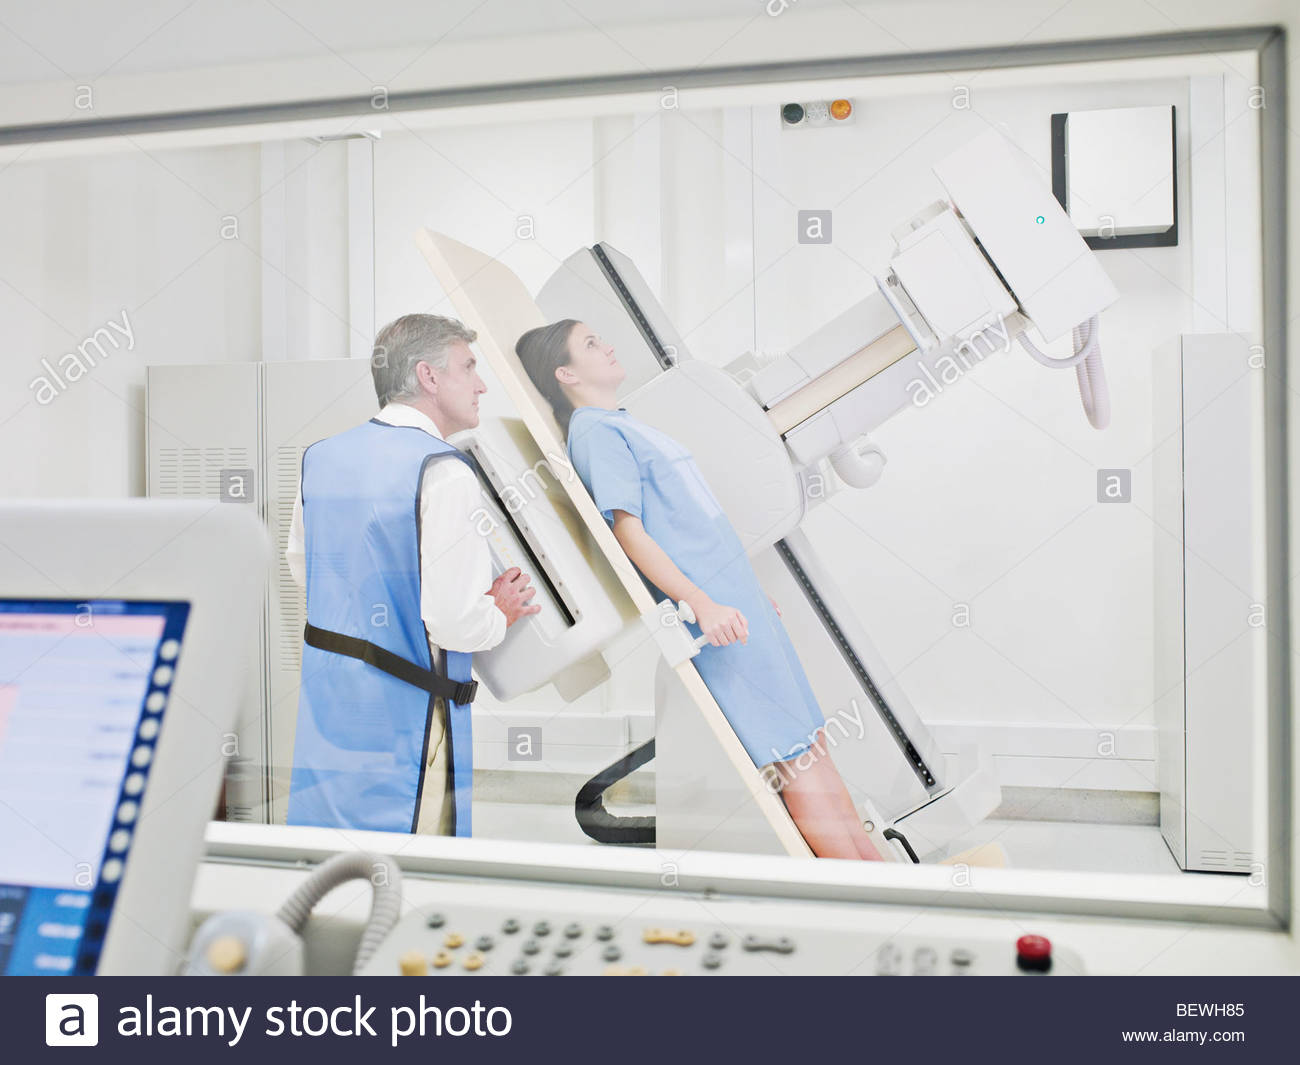 Patient having an x-ray examination - Stock Image